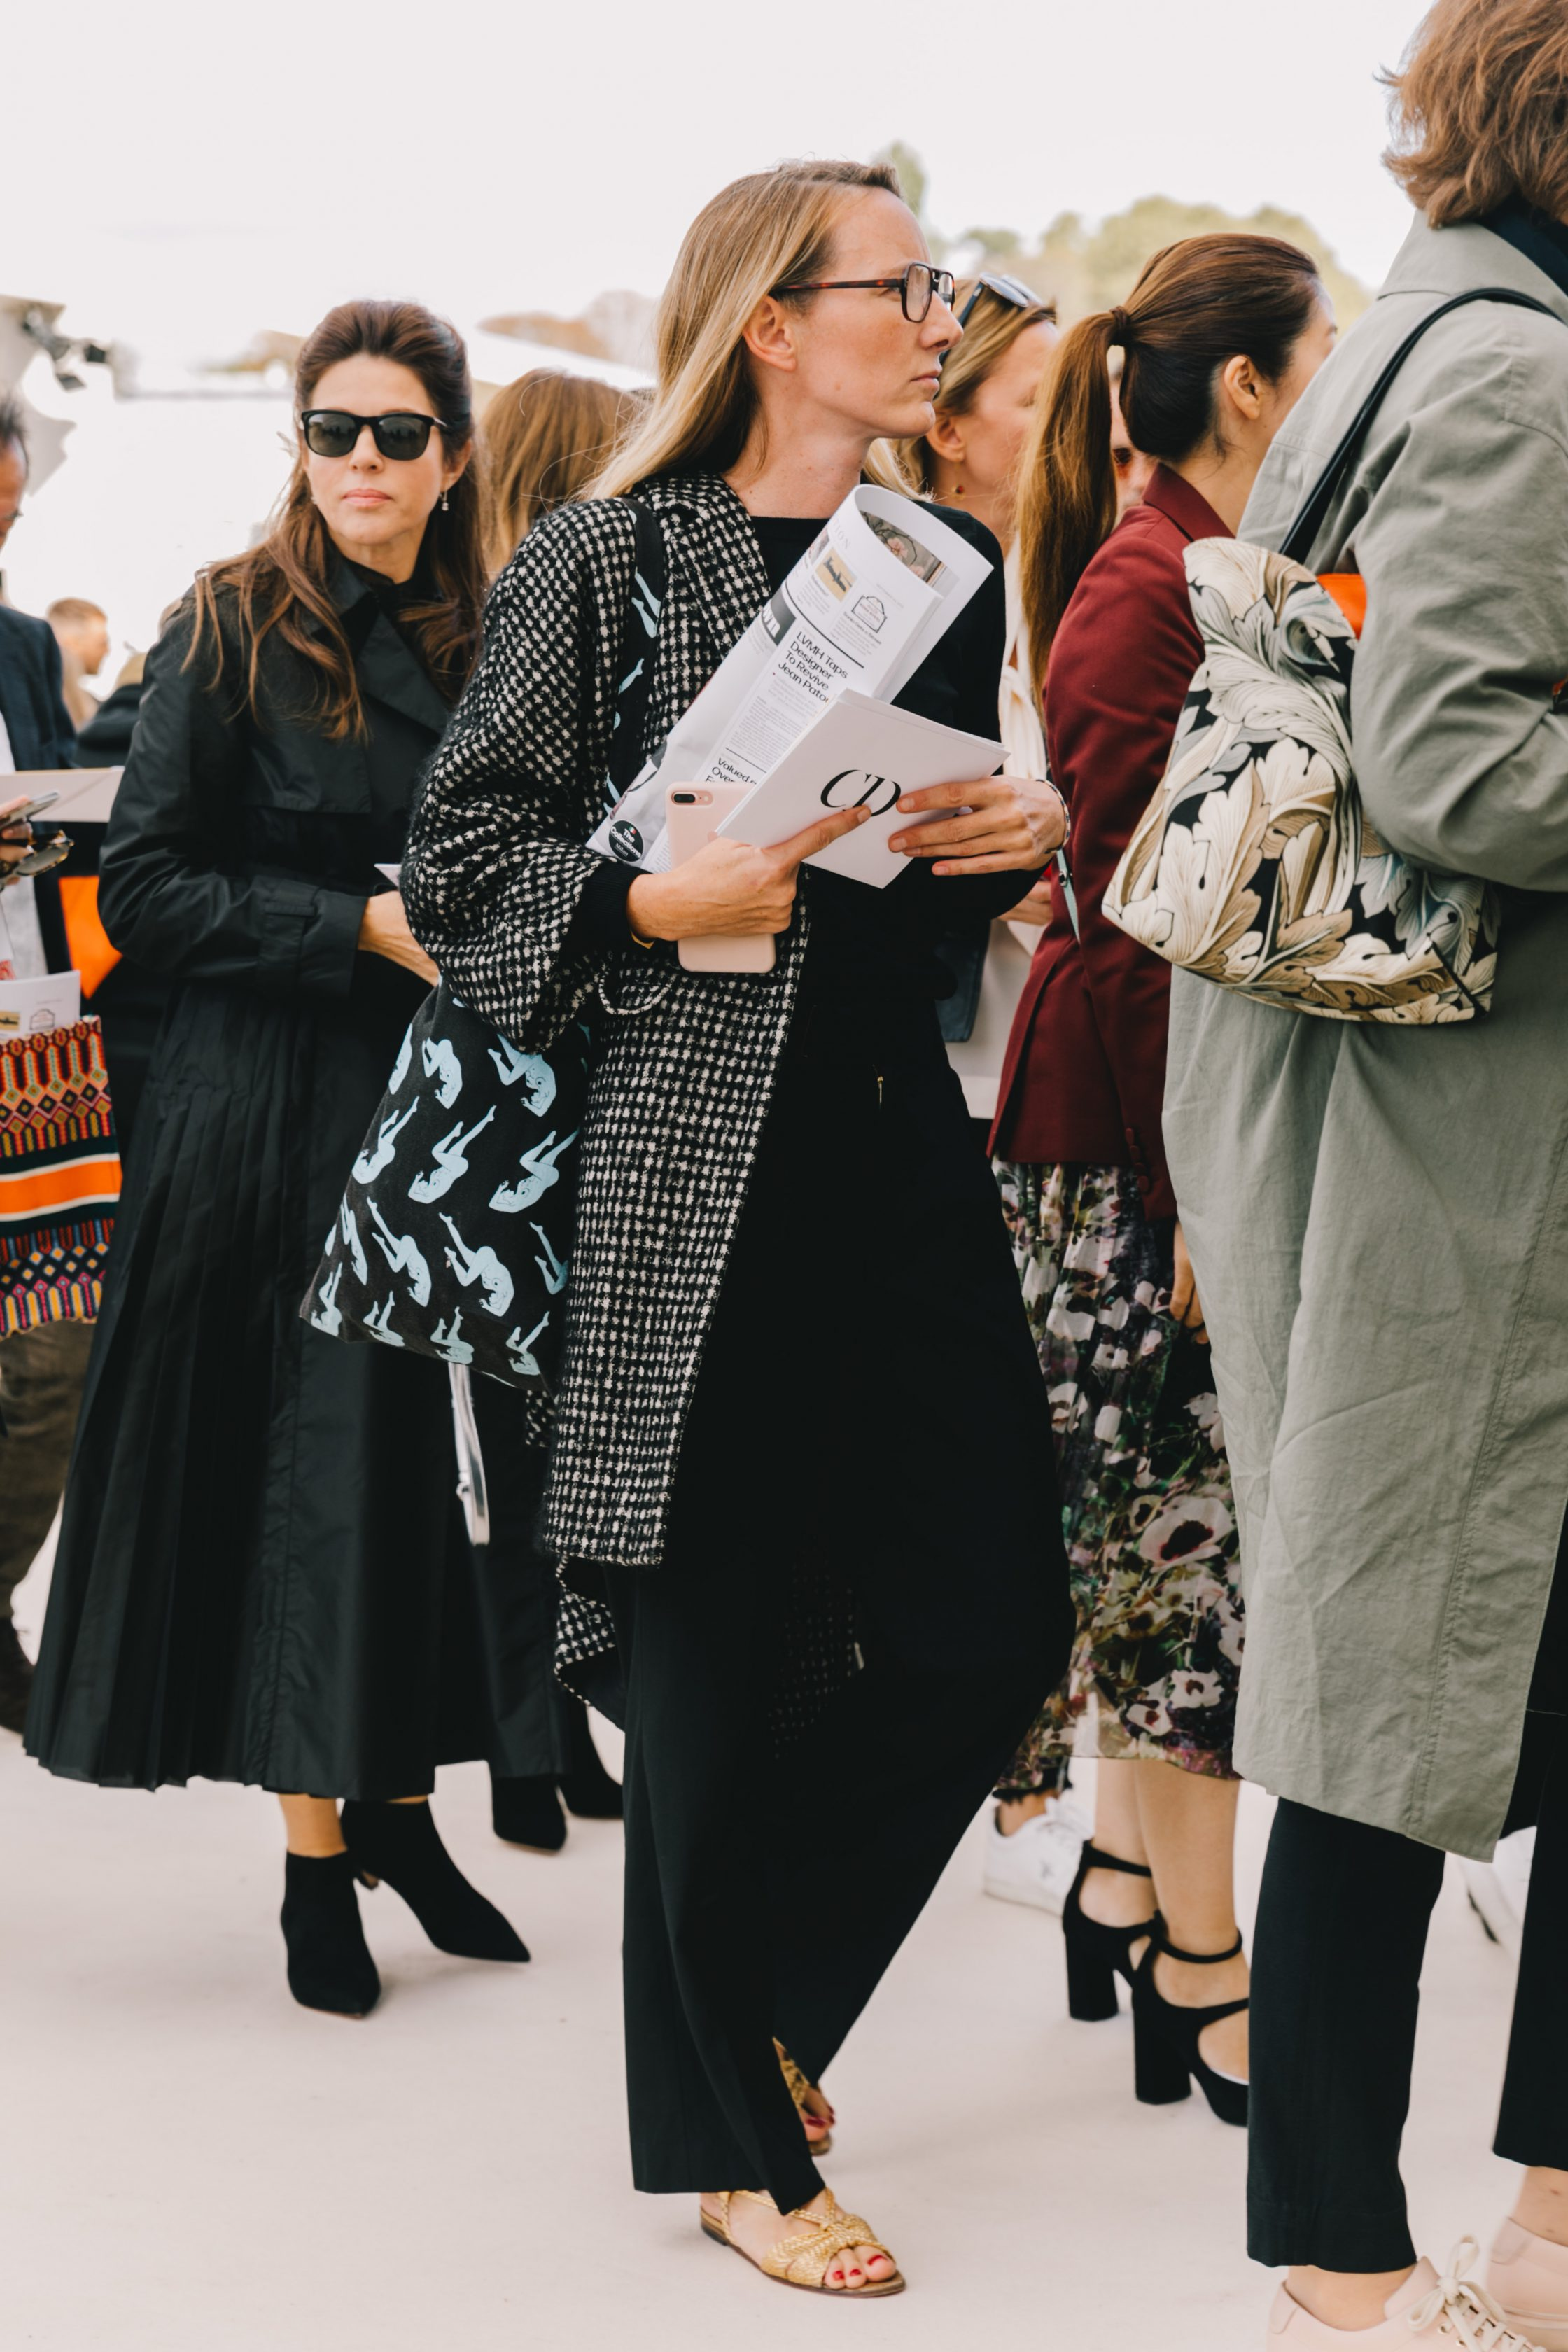 Paris Fashion Week September 2018 Street Style by Collage Vintage